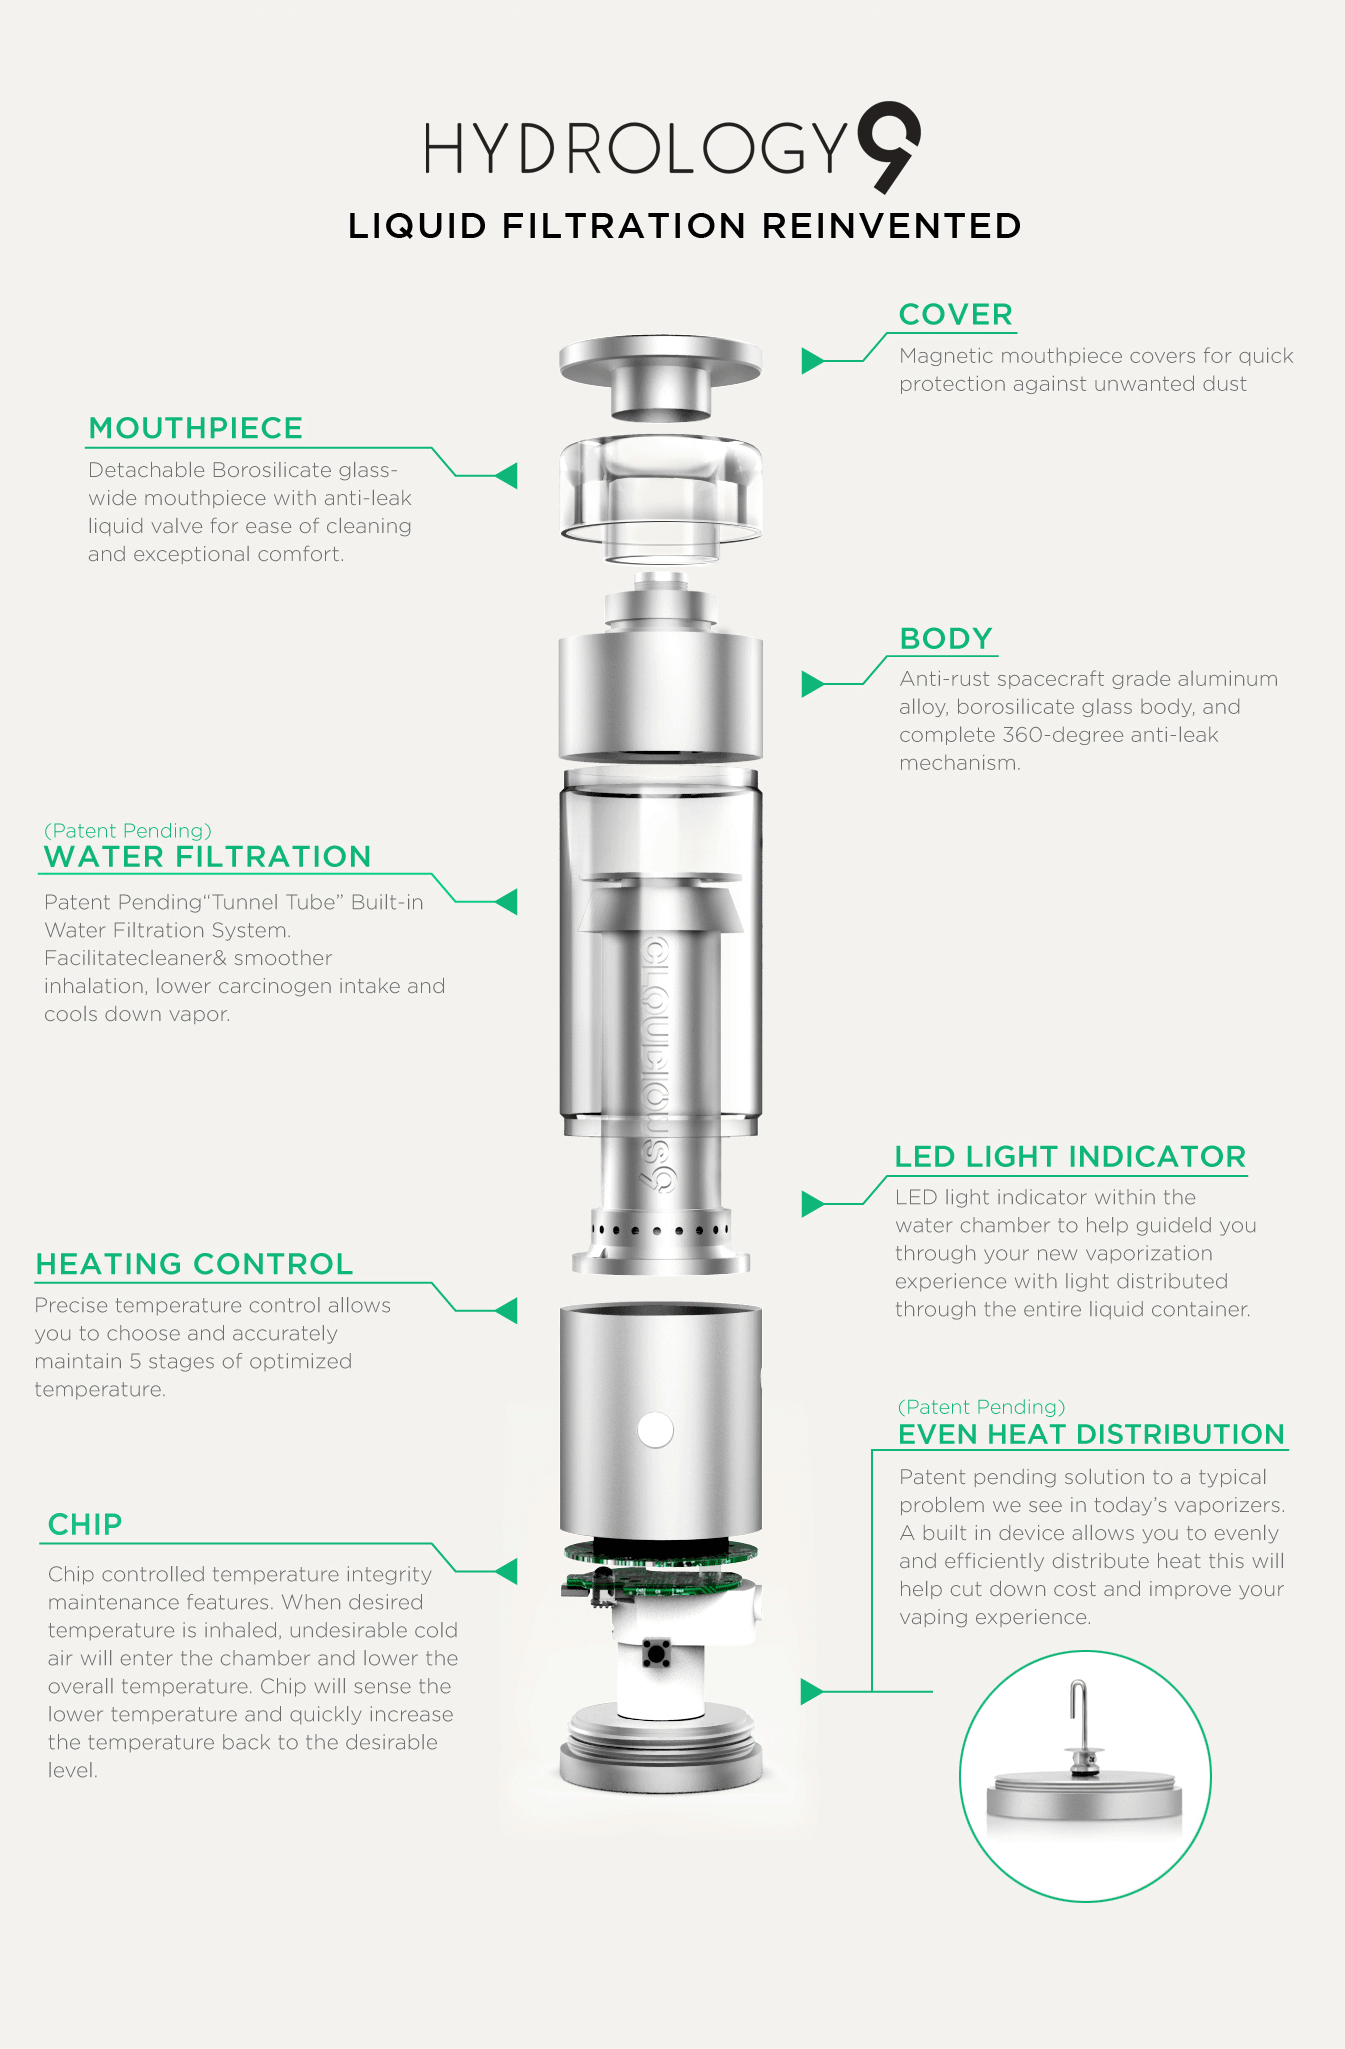 Get cloudious9 coupon codes here save money on the hydrology9 hydrology9 vaporizer fandeluxe Gallery